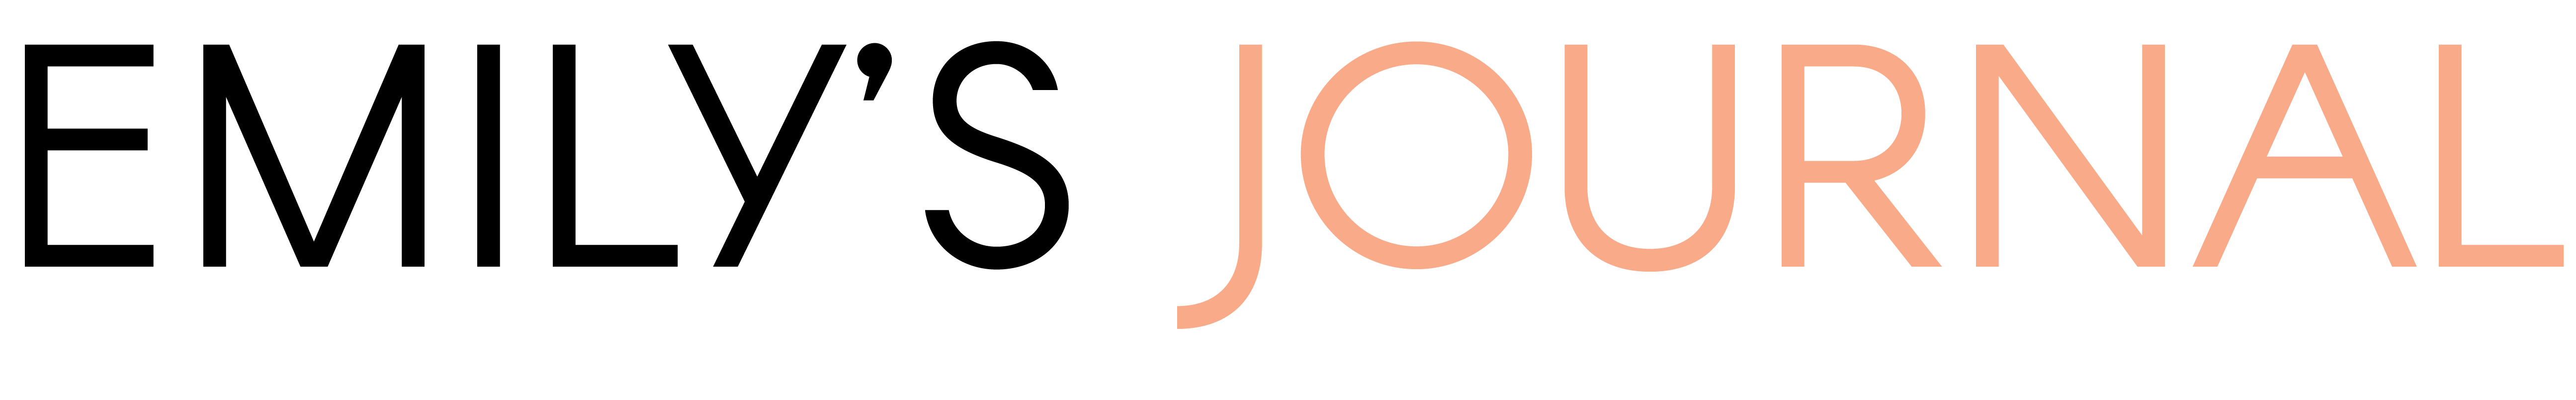 Emily Young | Emily's Journal